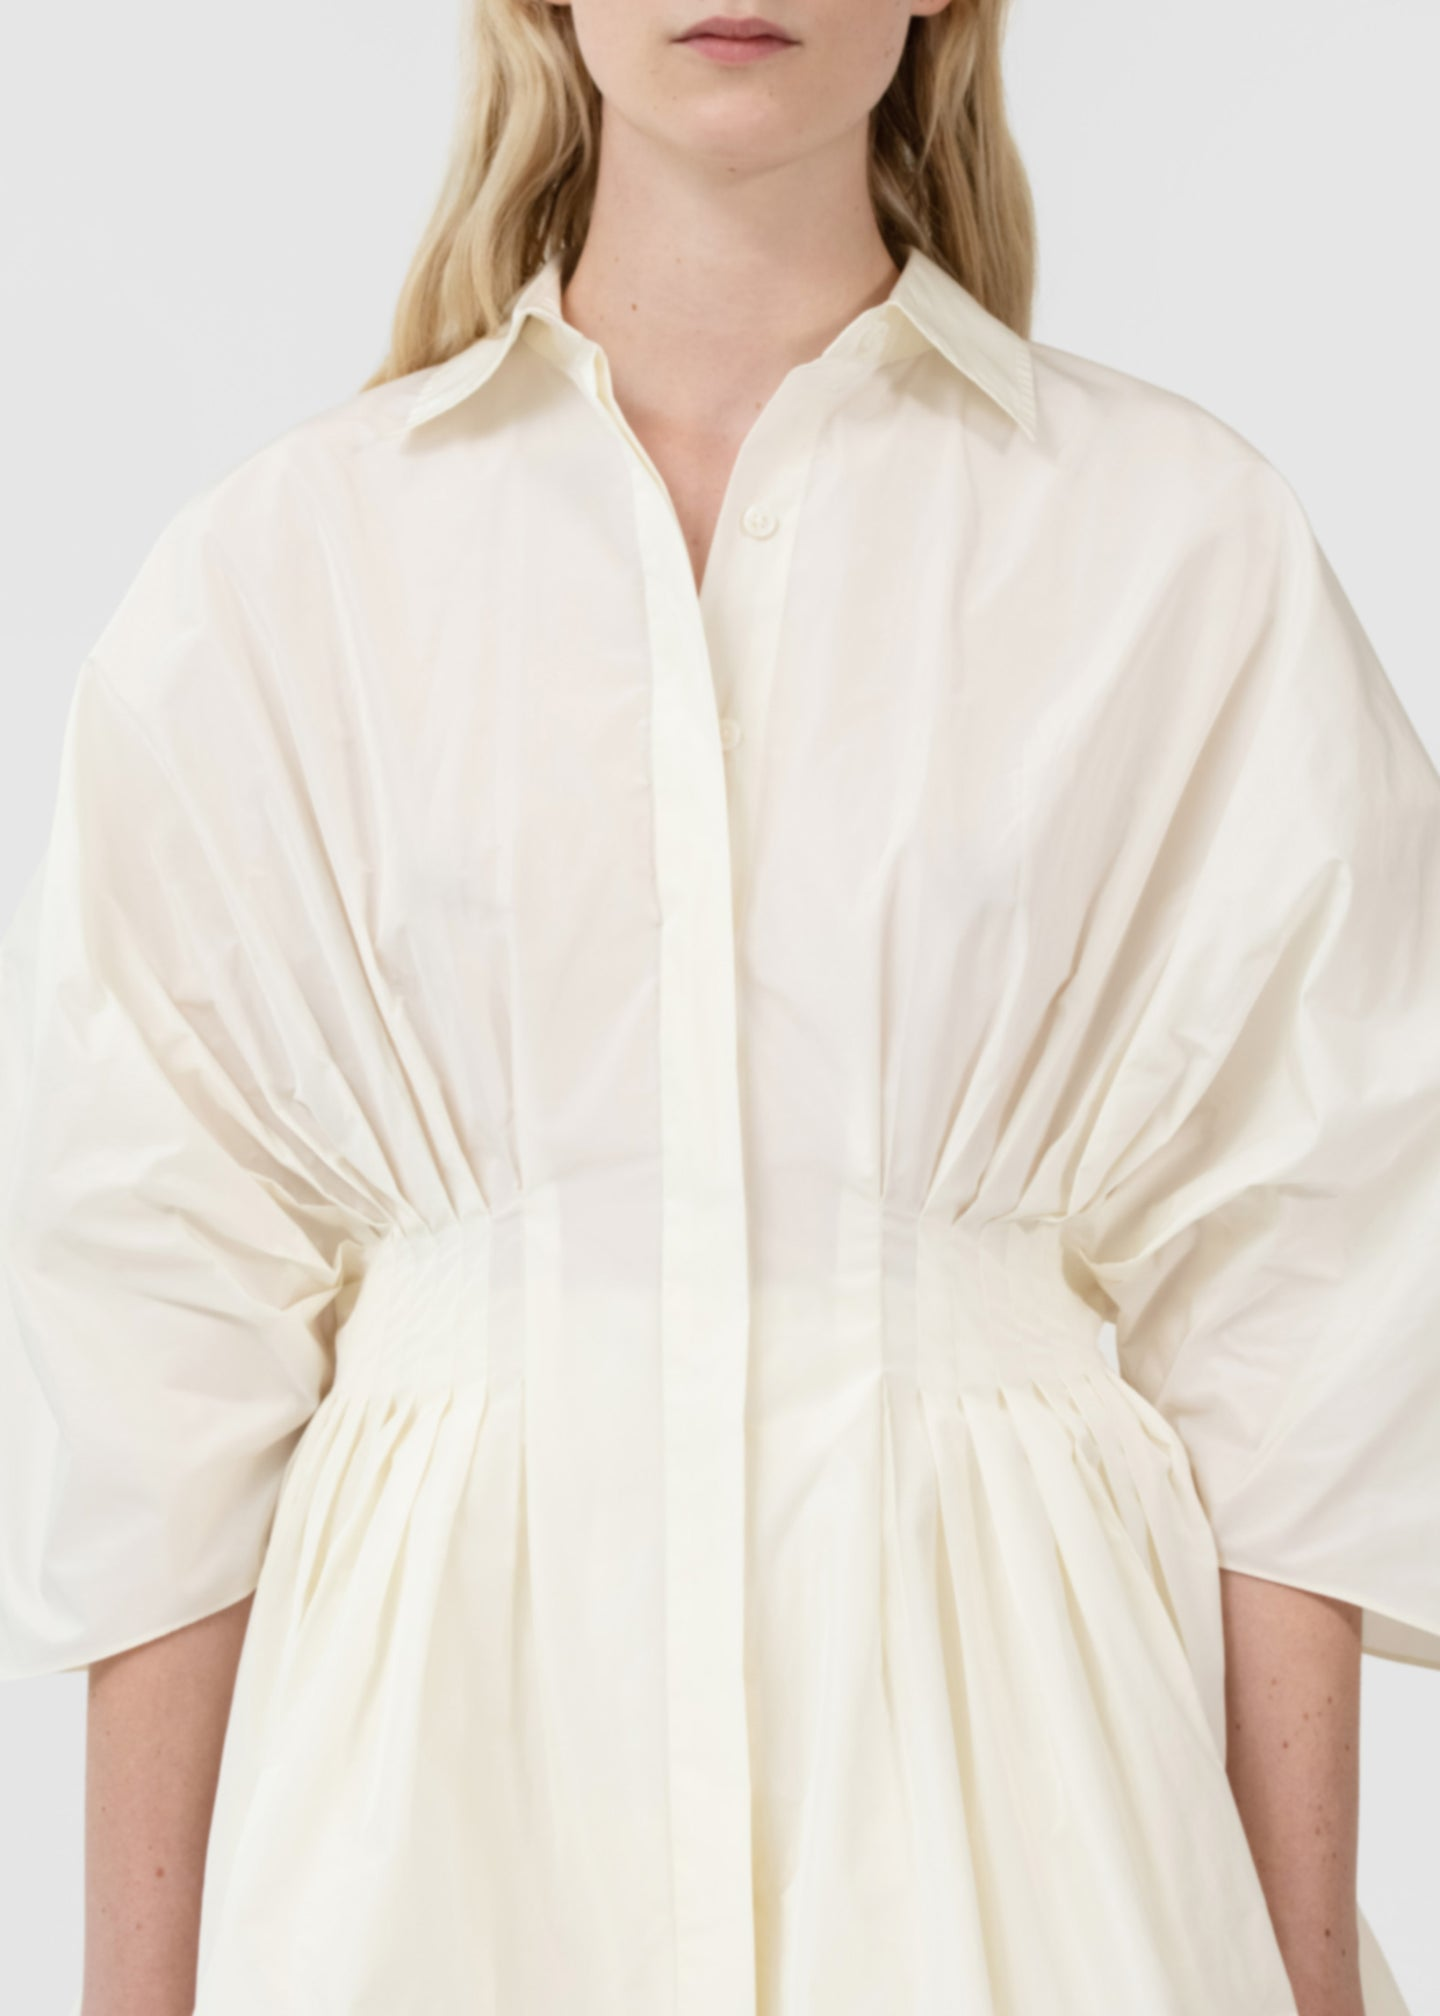 CO - Gathered Waist Button Front Blouse In Taffeta - Cream